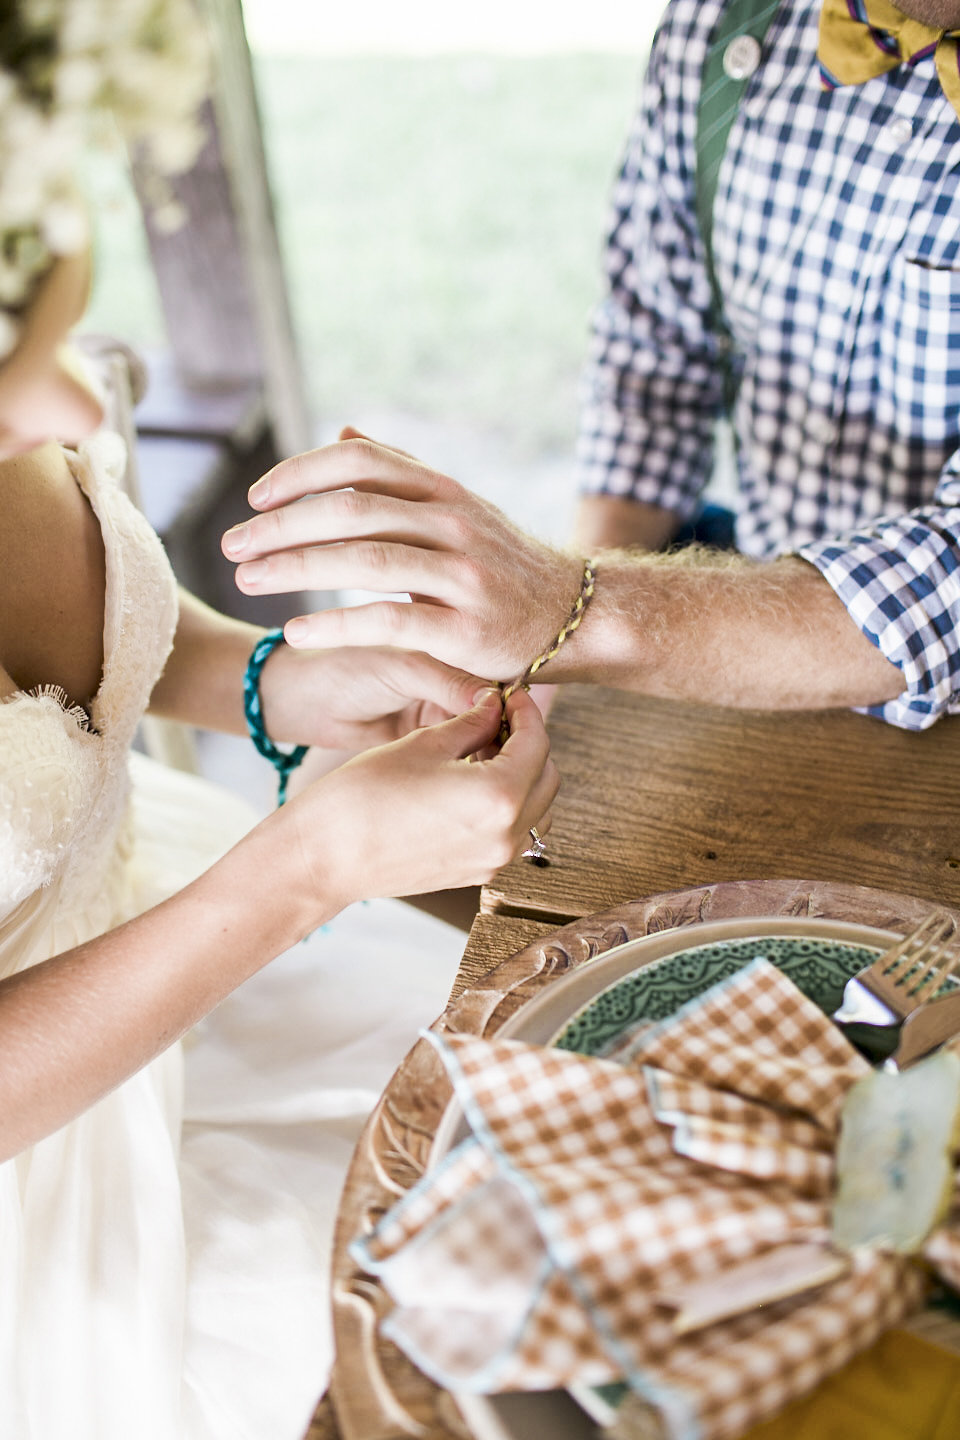 ivory-and-beau-savannah-wedding-planner-savannah-bridal-boutique-savannah-event-designer-summer-camp-themed-wedding-moonrise-kingdom-wedding-sarah-seven-amour-wedding-dress-gingham-groom-attire-friendship-bracelets-Apt.BPhotography_SummerCamp(81of222).jpg